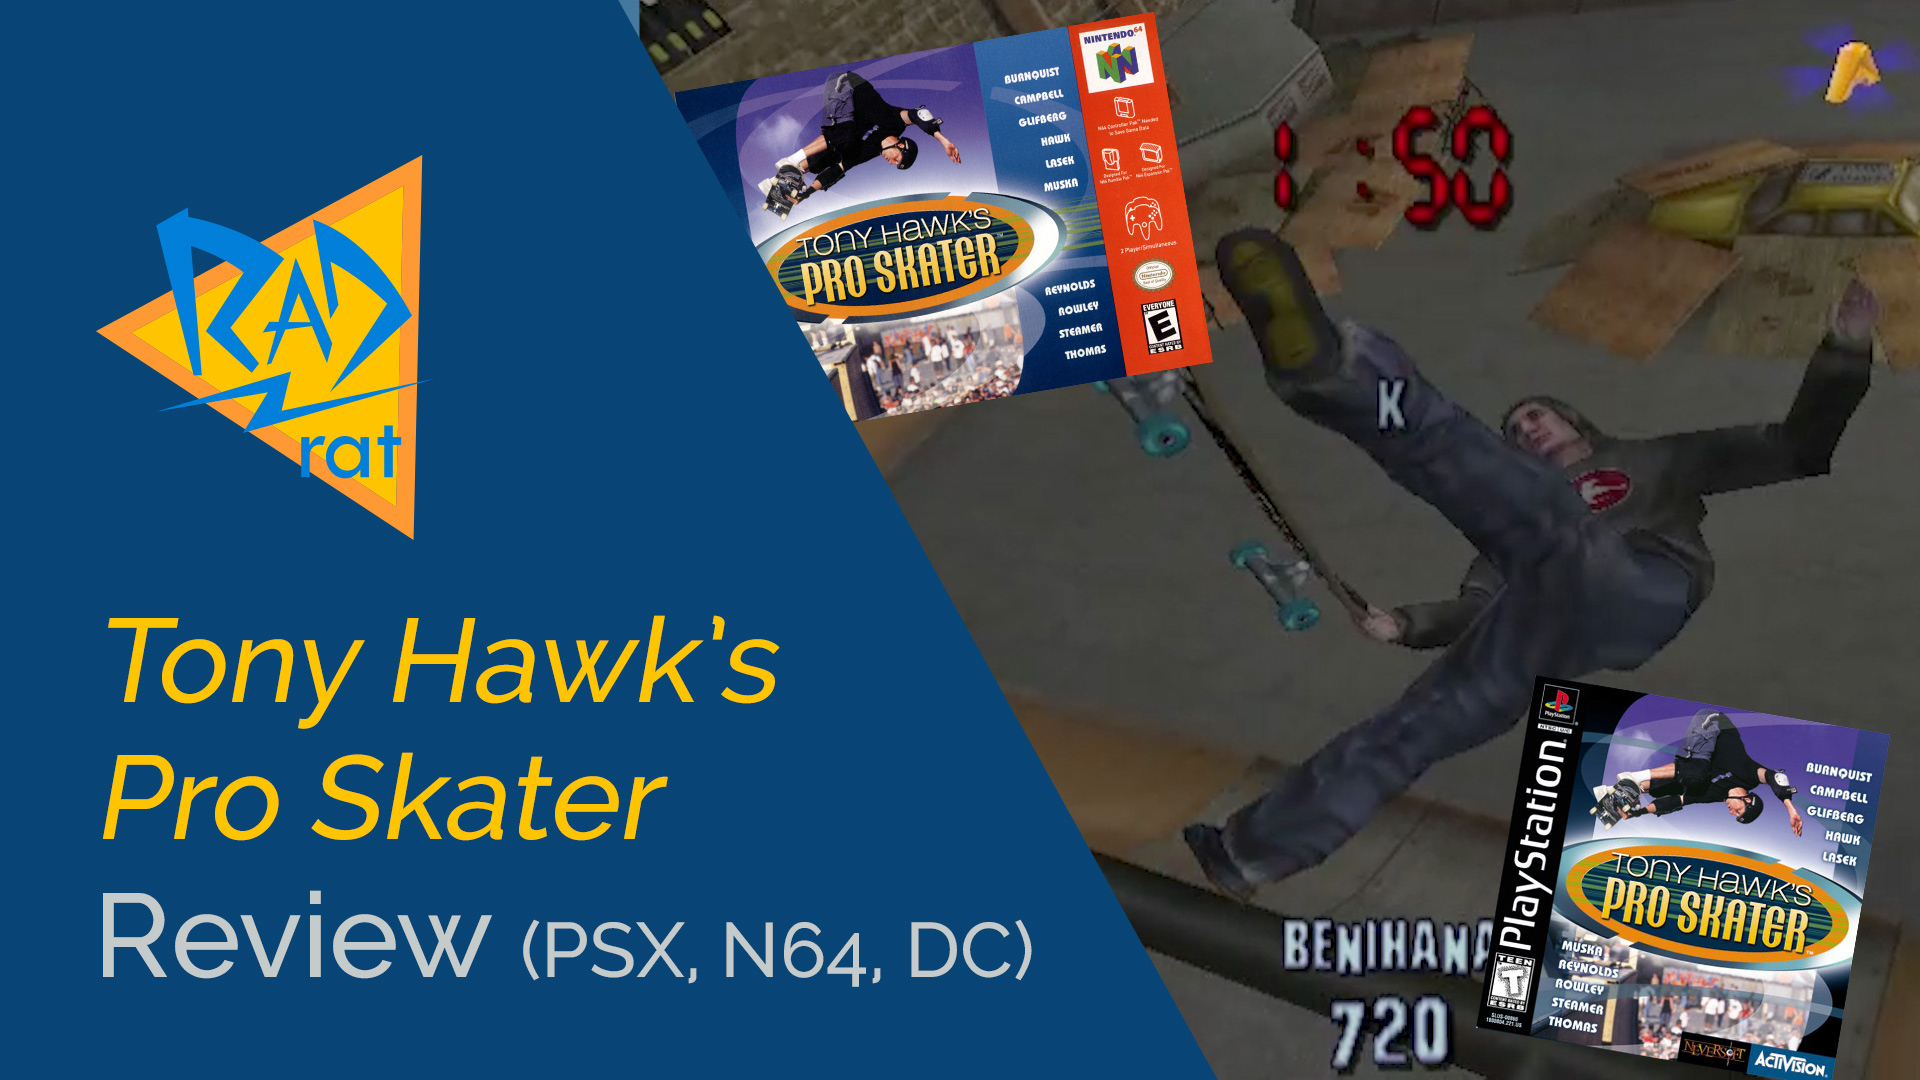 tony hawk pro skater 2 manual